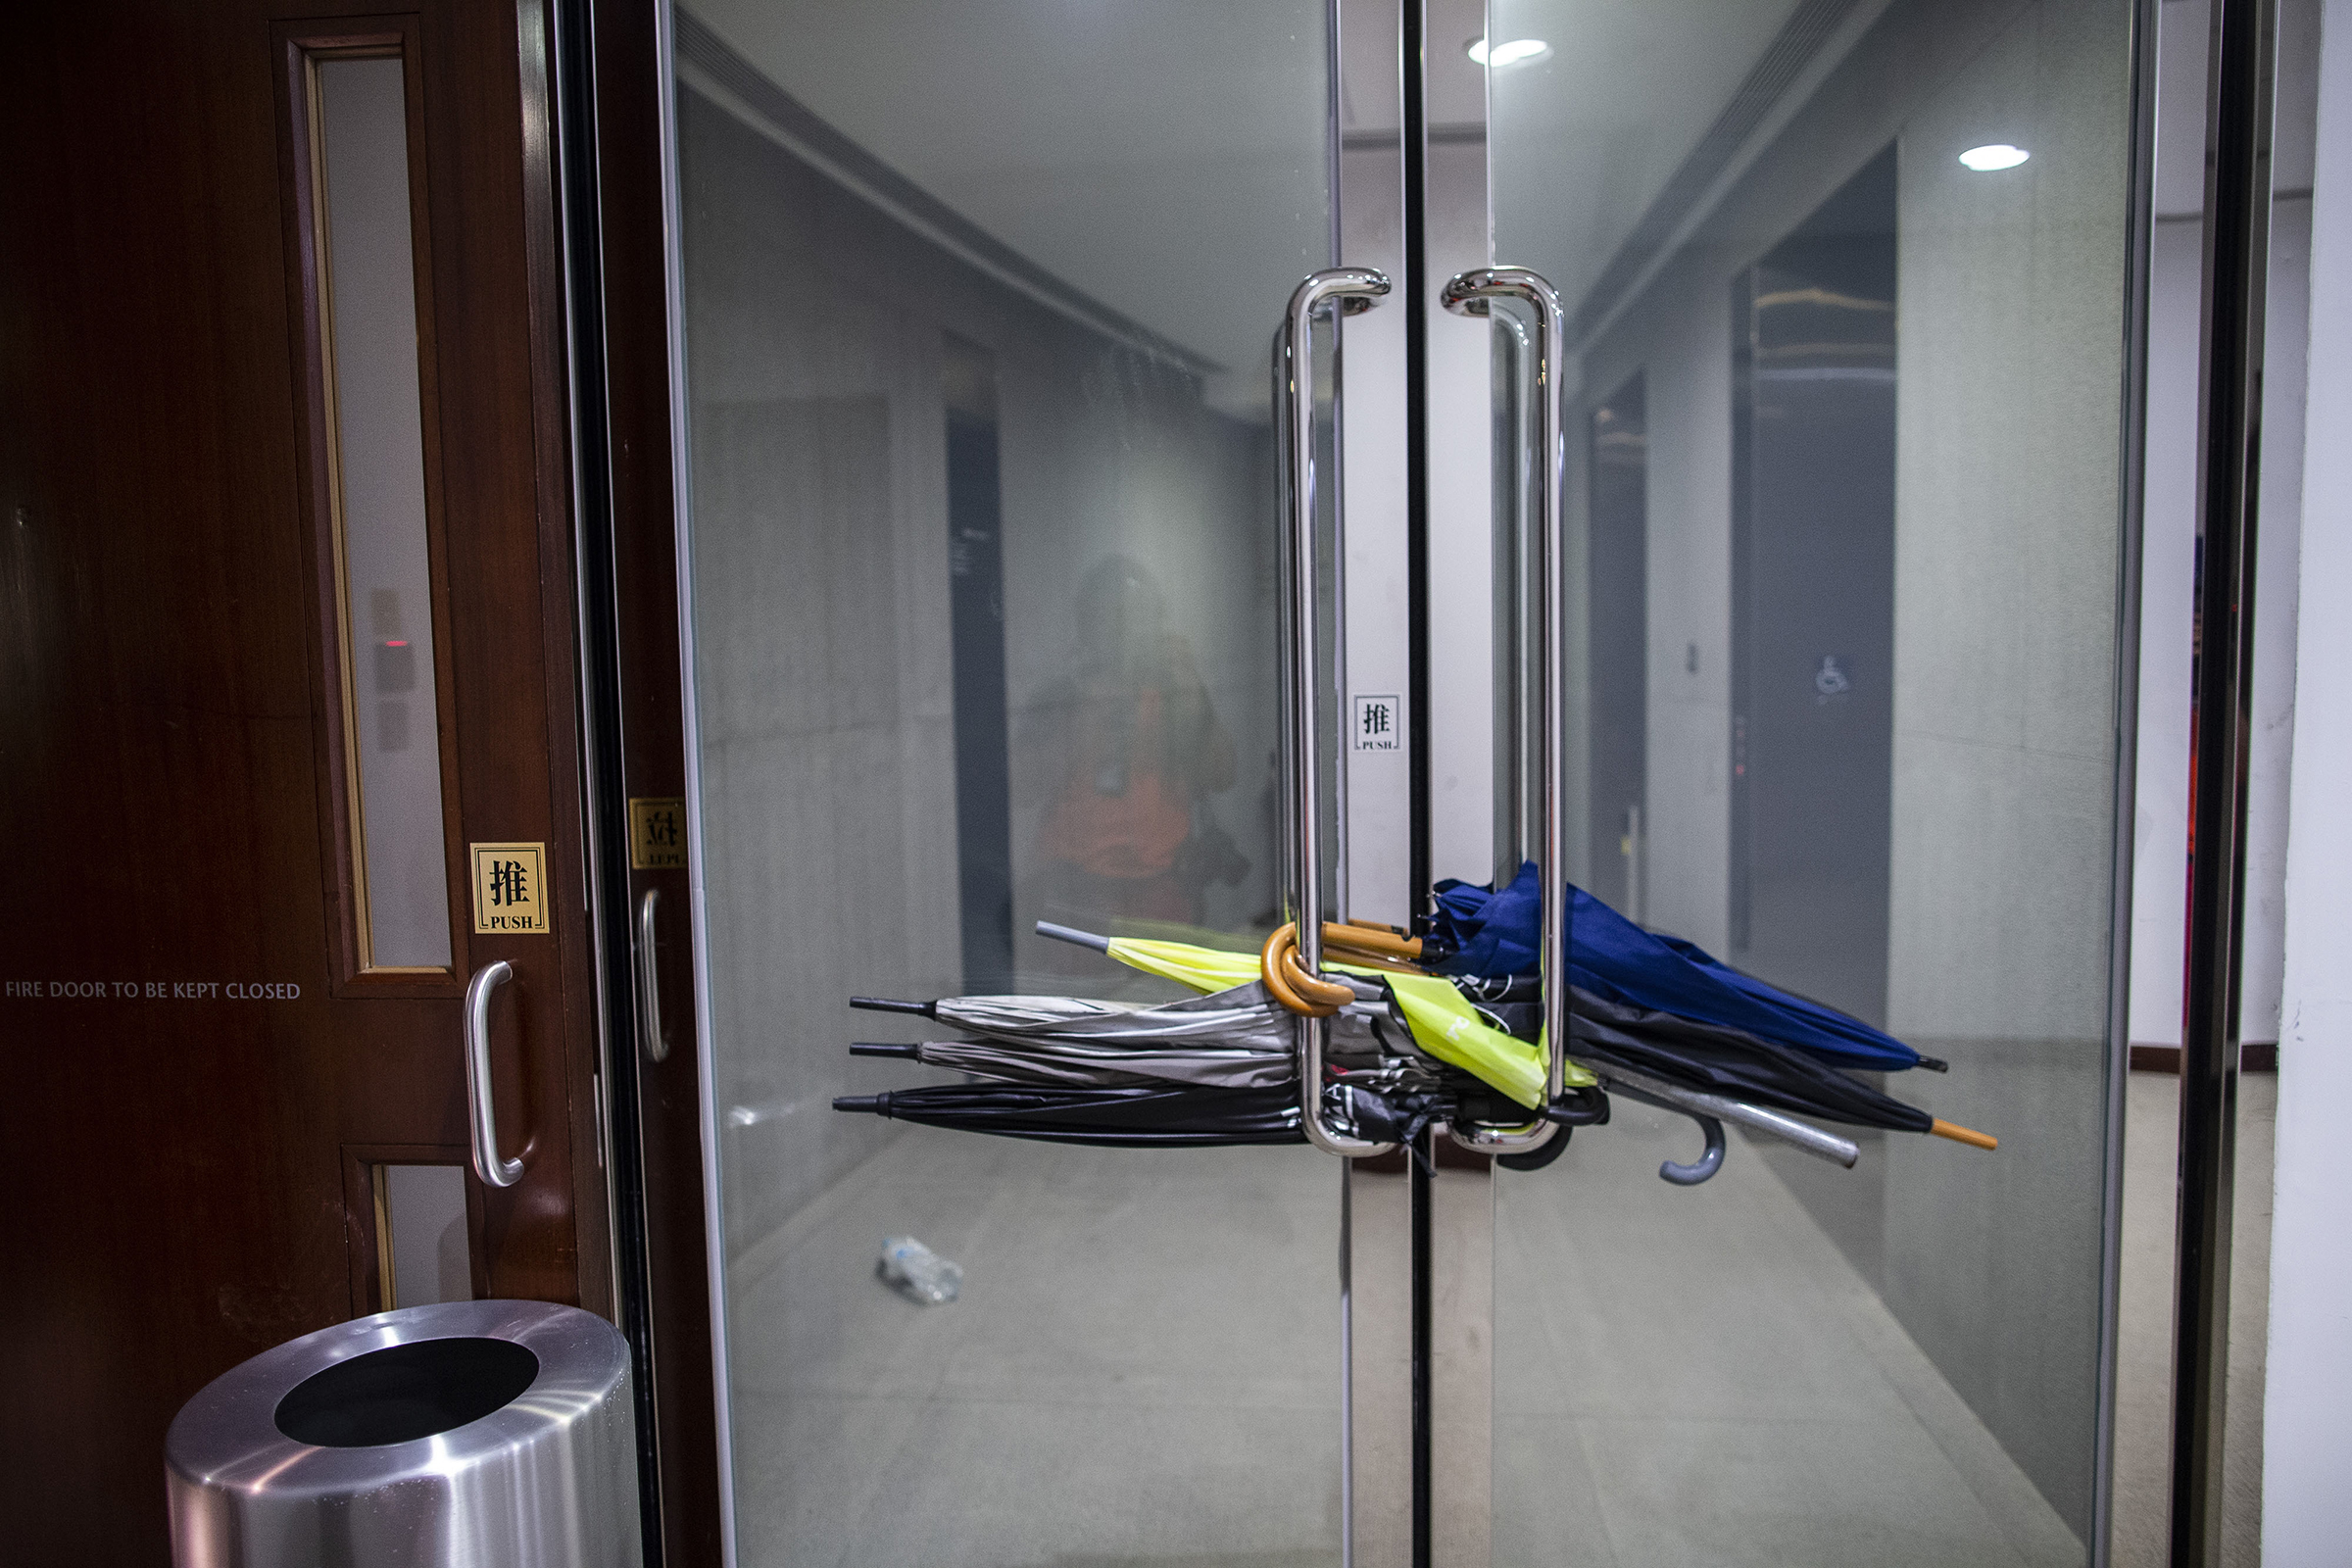 Umbrellas are used to block doors inside the Legislative Council building in Hong Kong on July 1, 2019.